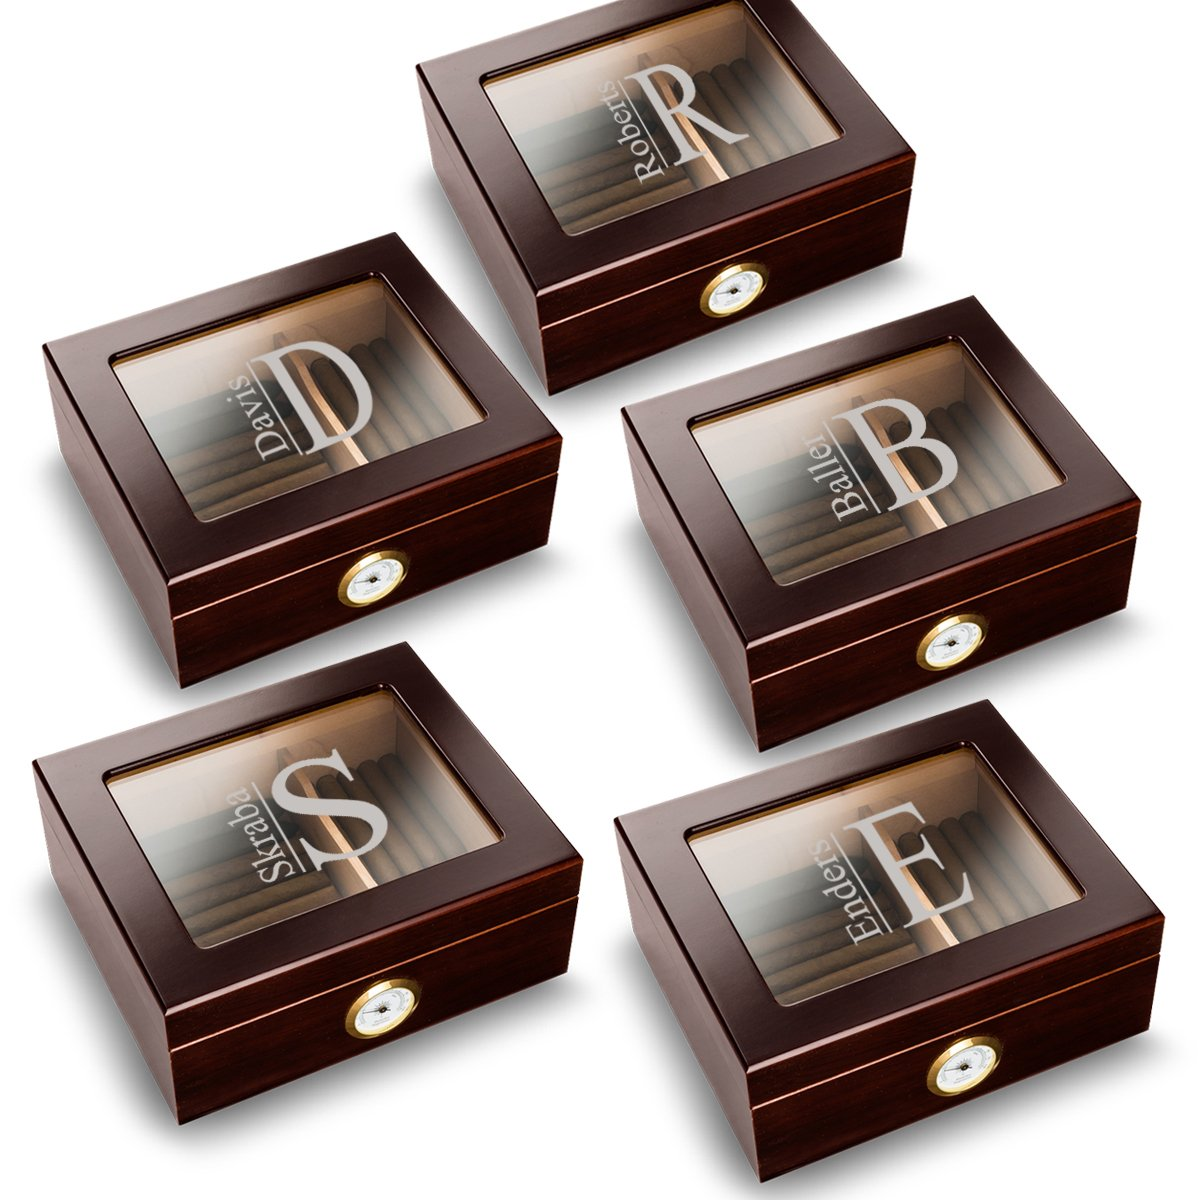 Personalized Mahogany Trinidad Glass Top Humidors - Set of 5 Humidors for Groomsmen - Modern